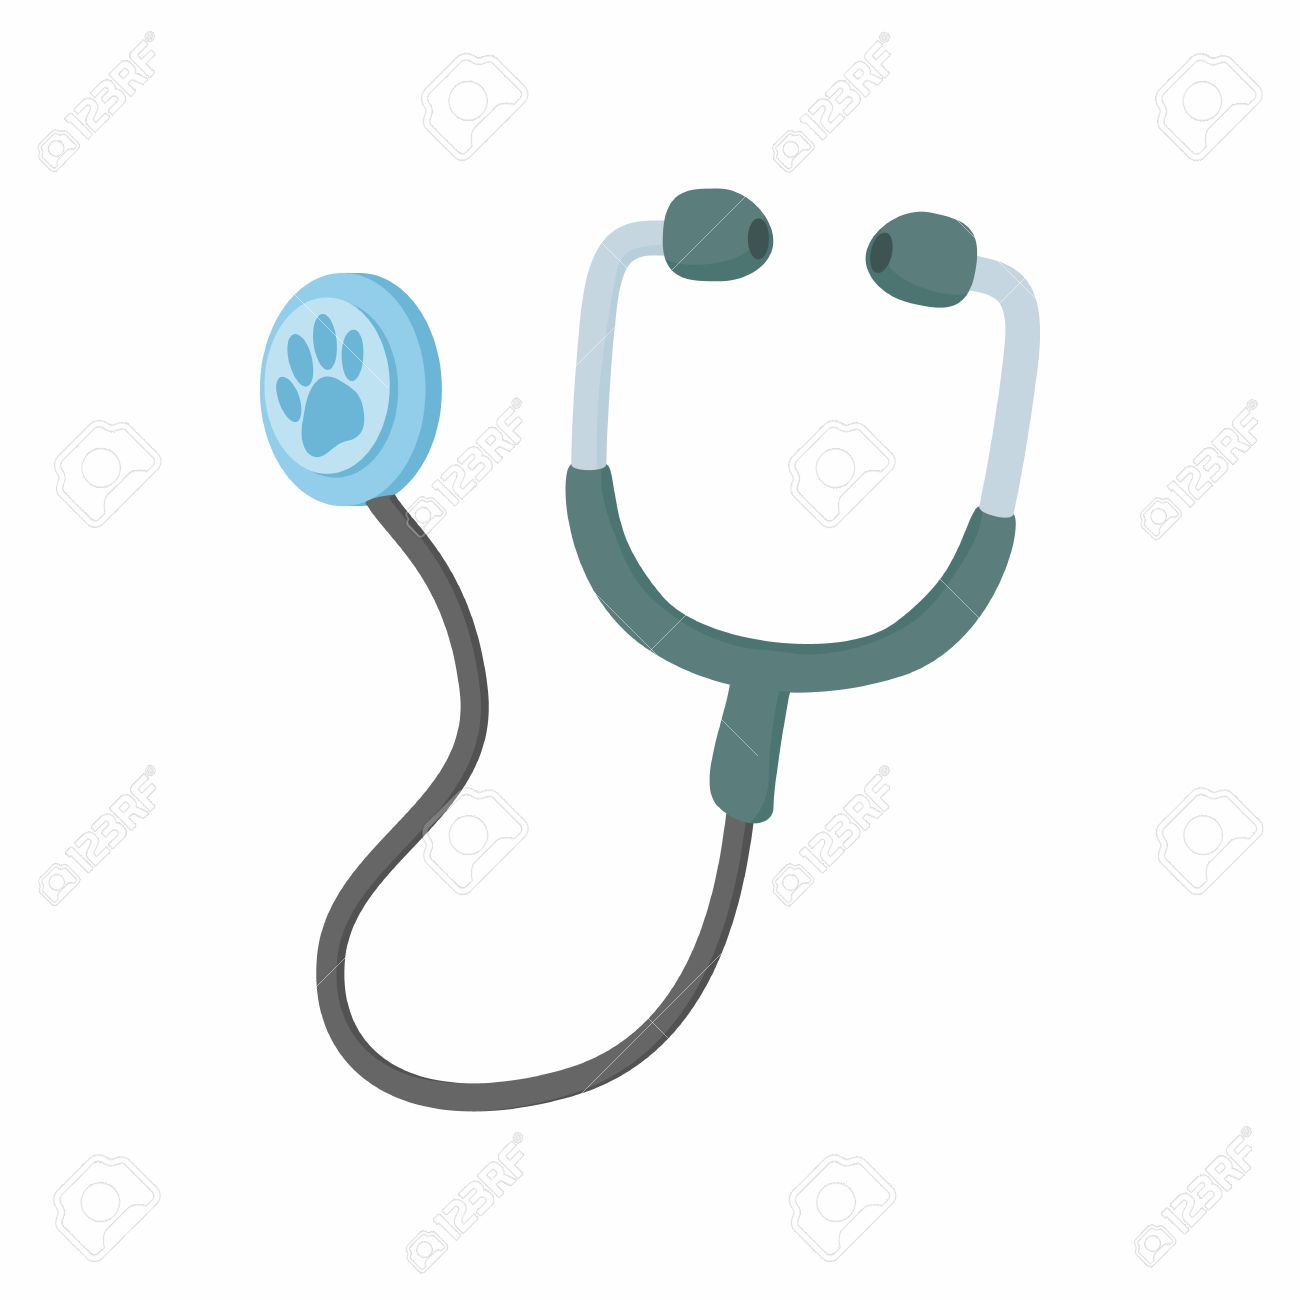 Image result for veterinary medical icon